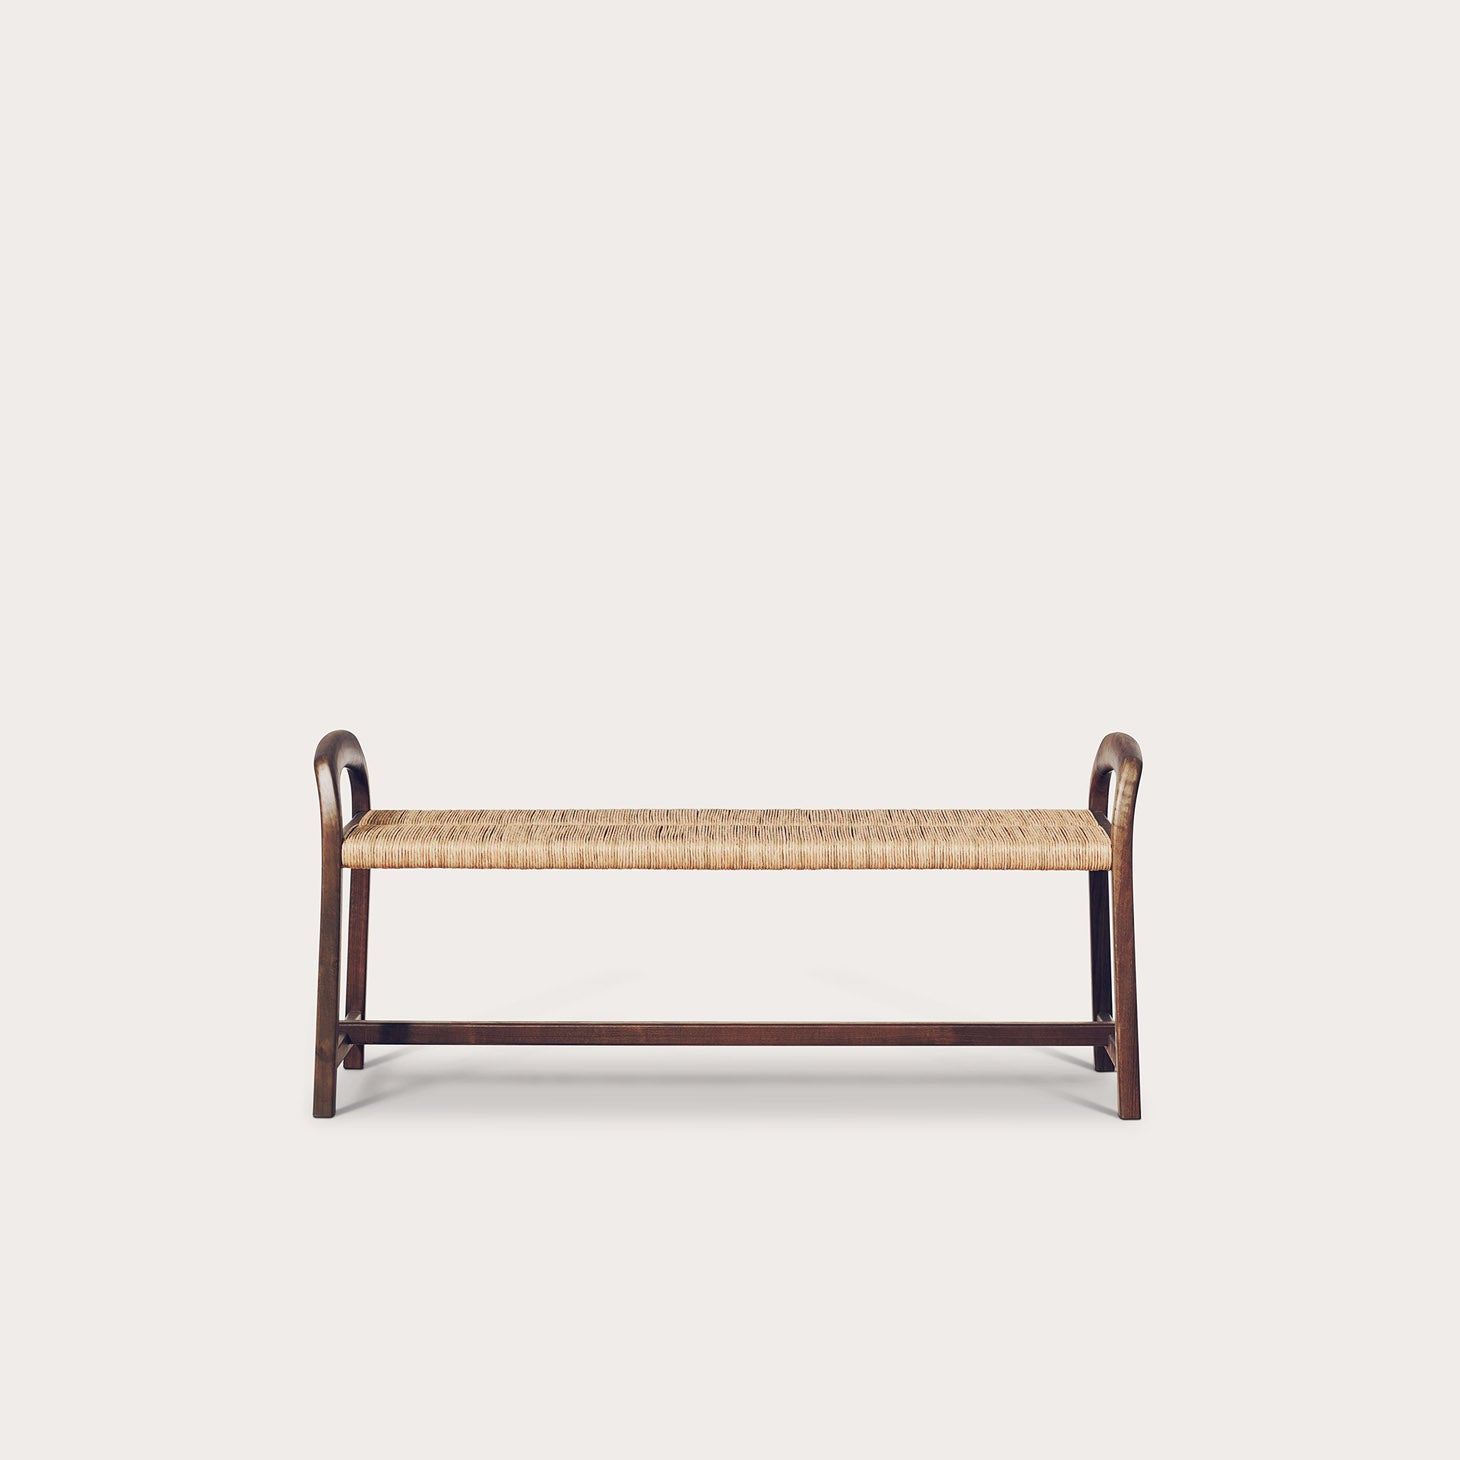 NARA Bench Seating Bruno Moinard Designer Furniture Sku: 773-300-10002